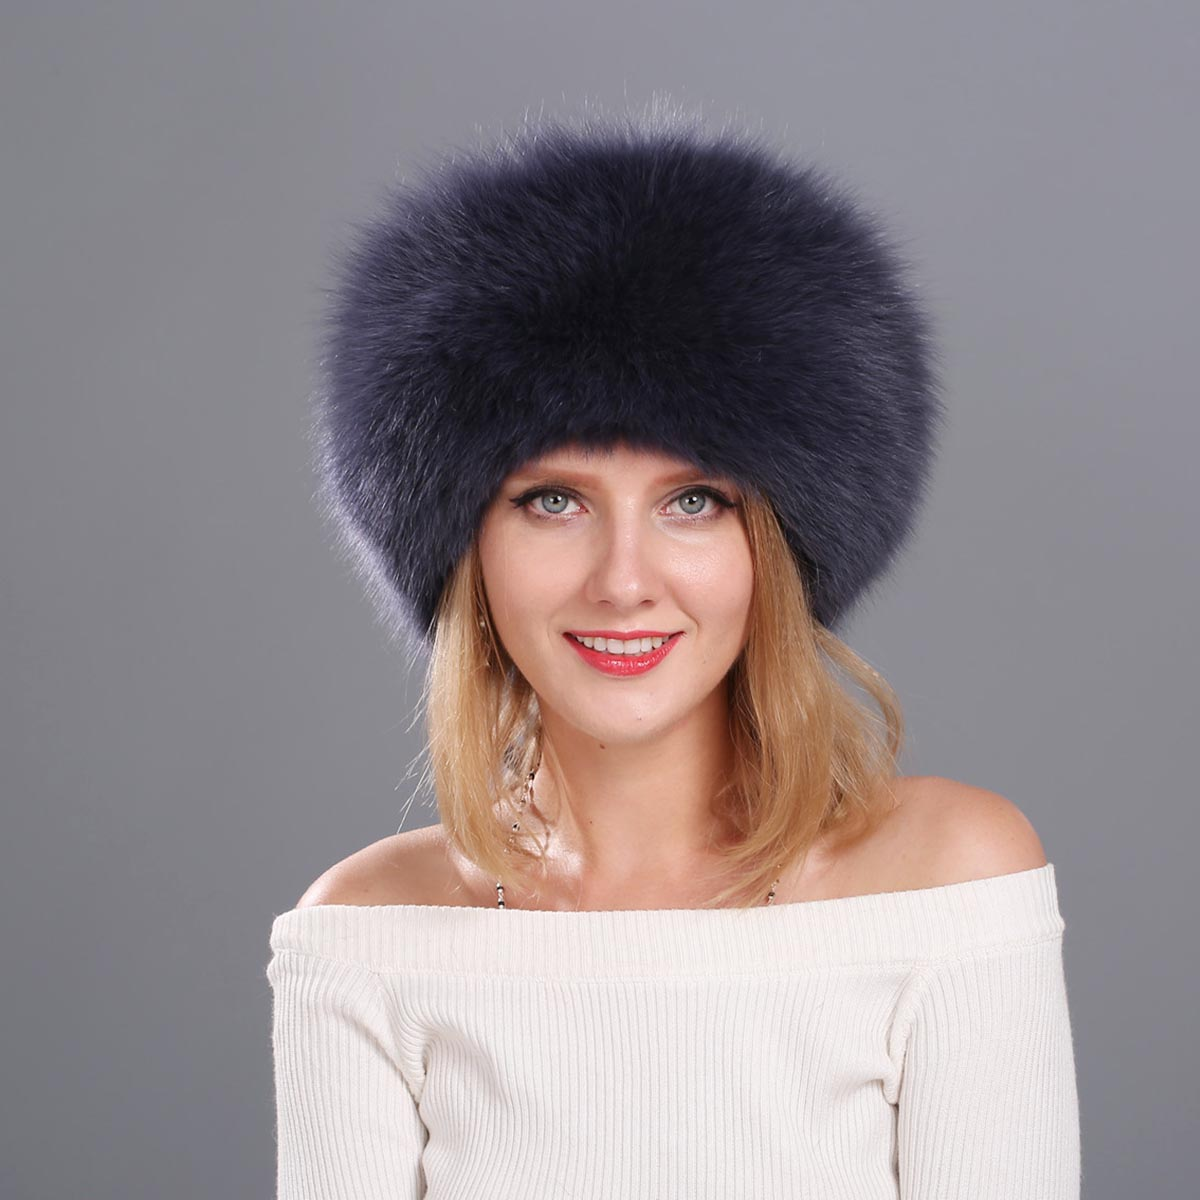 все цены на  Natural Fox Fur Cap for Women Beanies Russian Winter Fur Hat with Tail 100% Real Fox Fur Hat Black White Silver Fox  в интернете